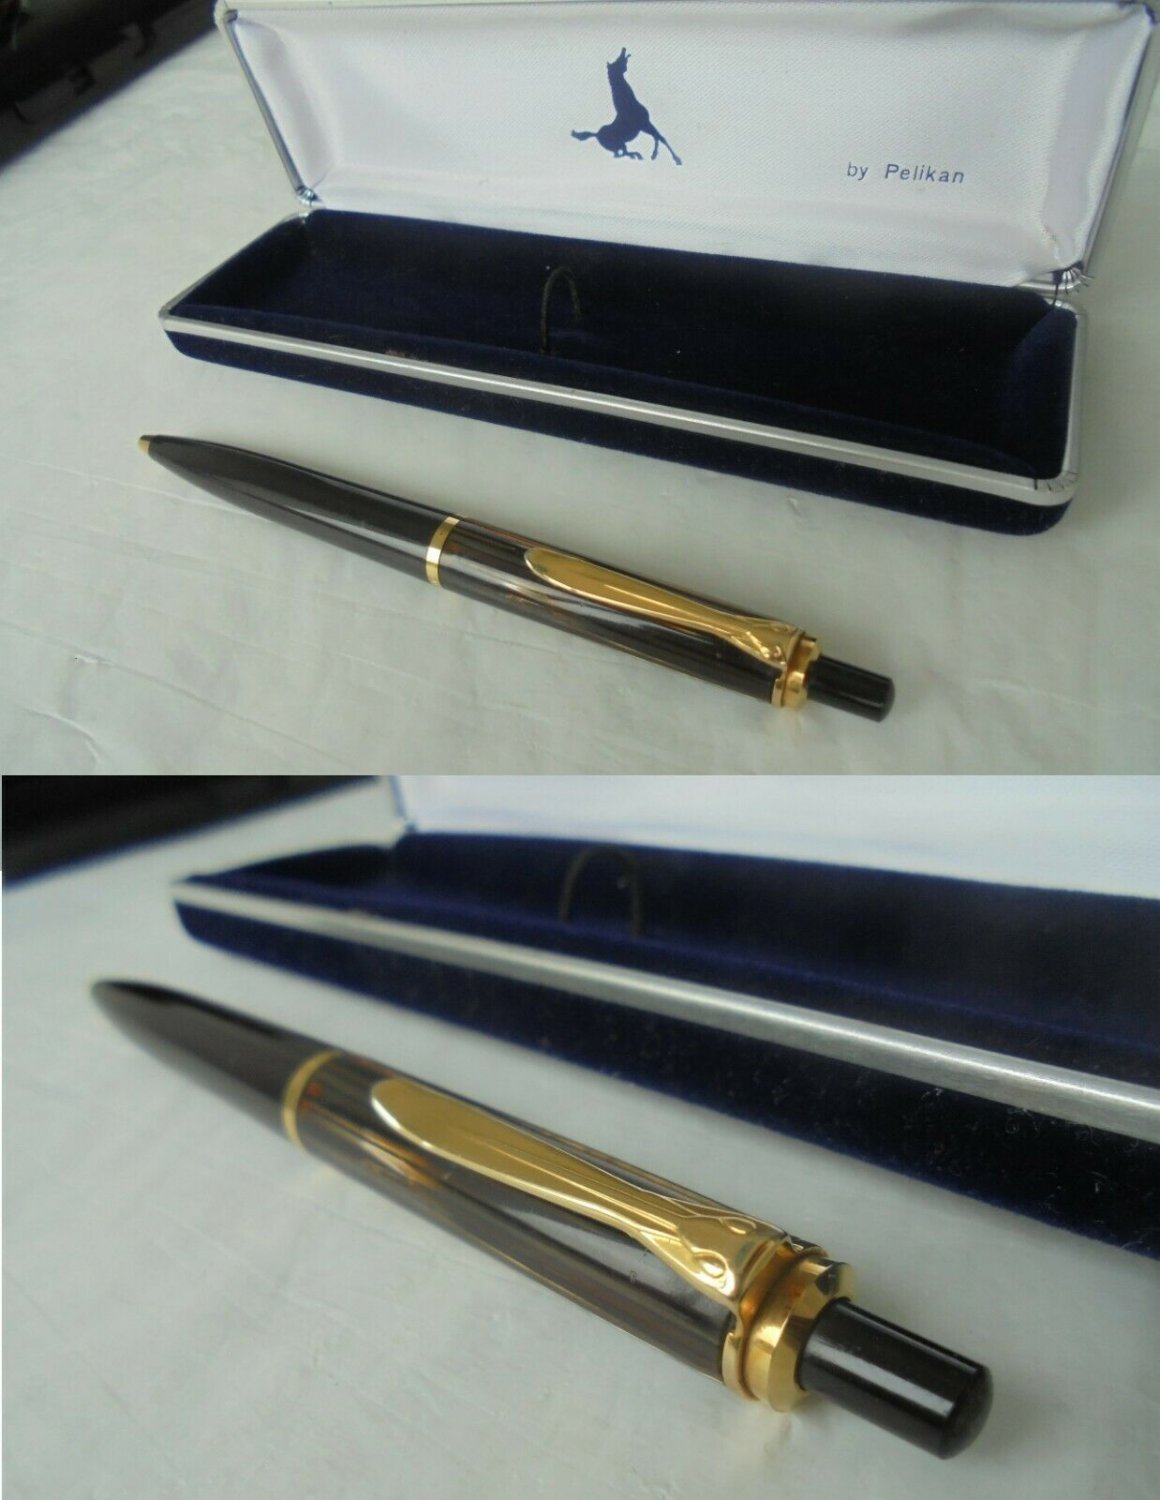 PELIKAN K 150 BALL PEN K150 TIGER BROWN +BOX ORIGINAL